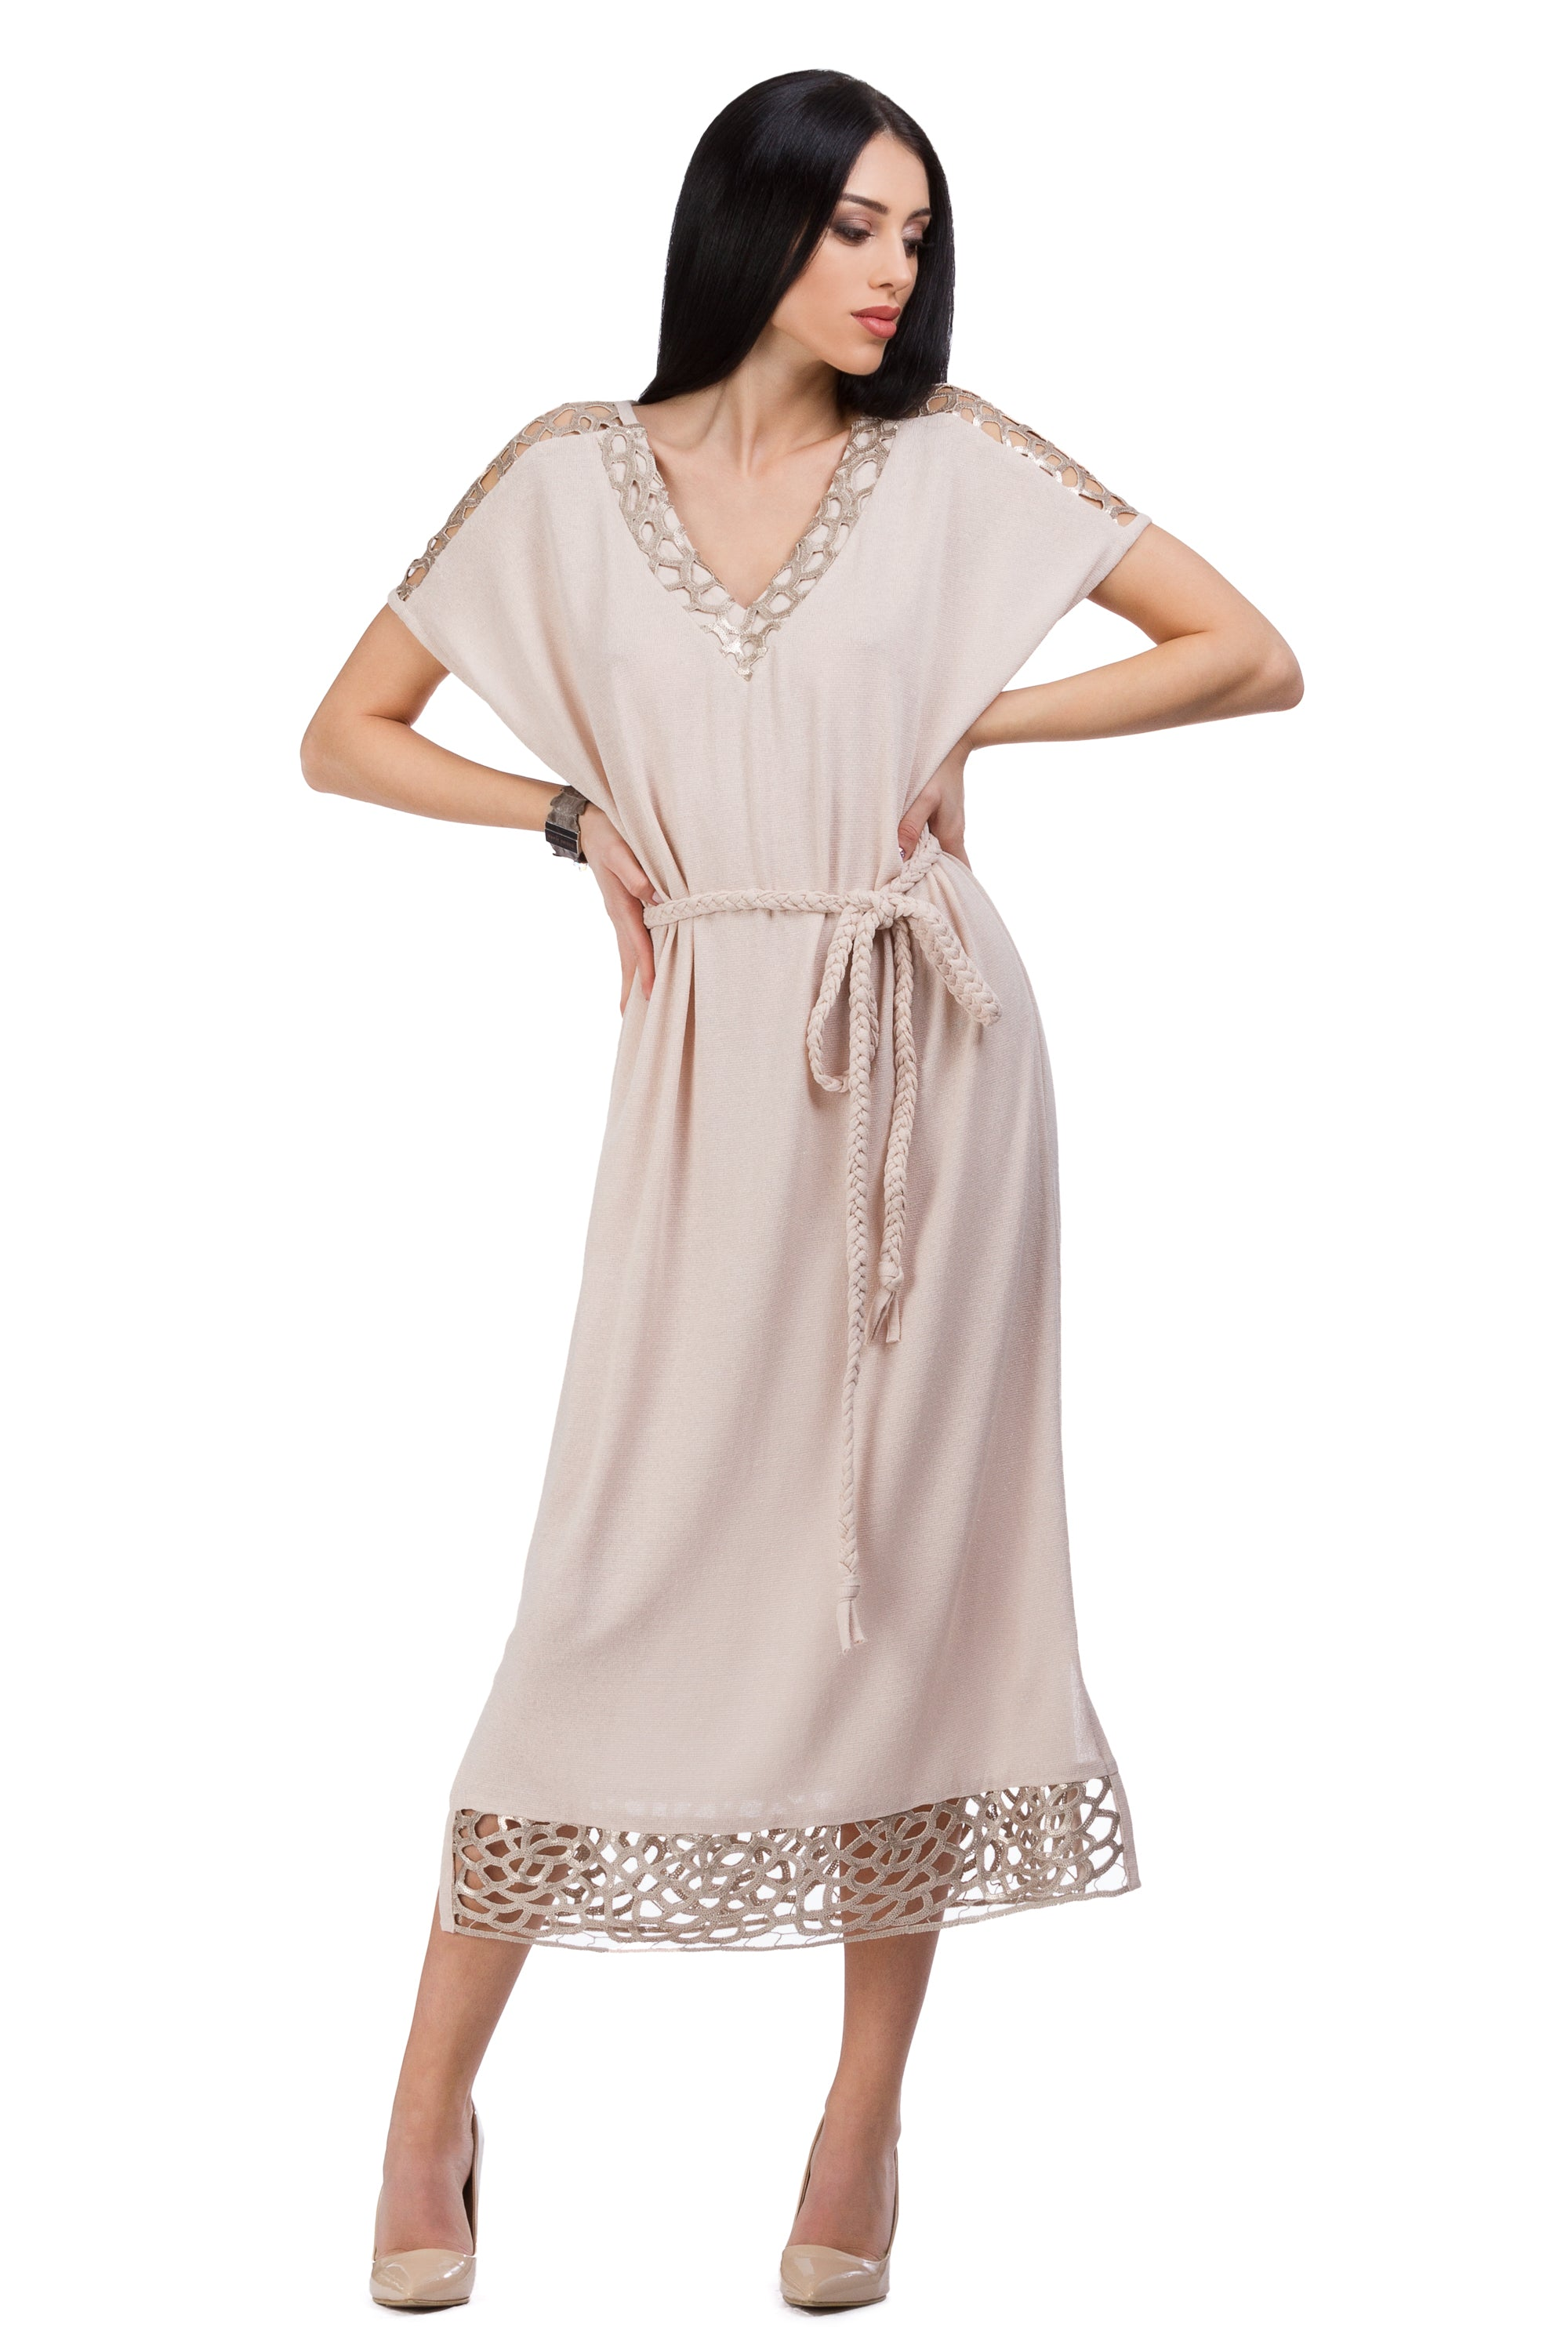 Mocha color dress with golden-copper thread